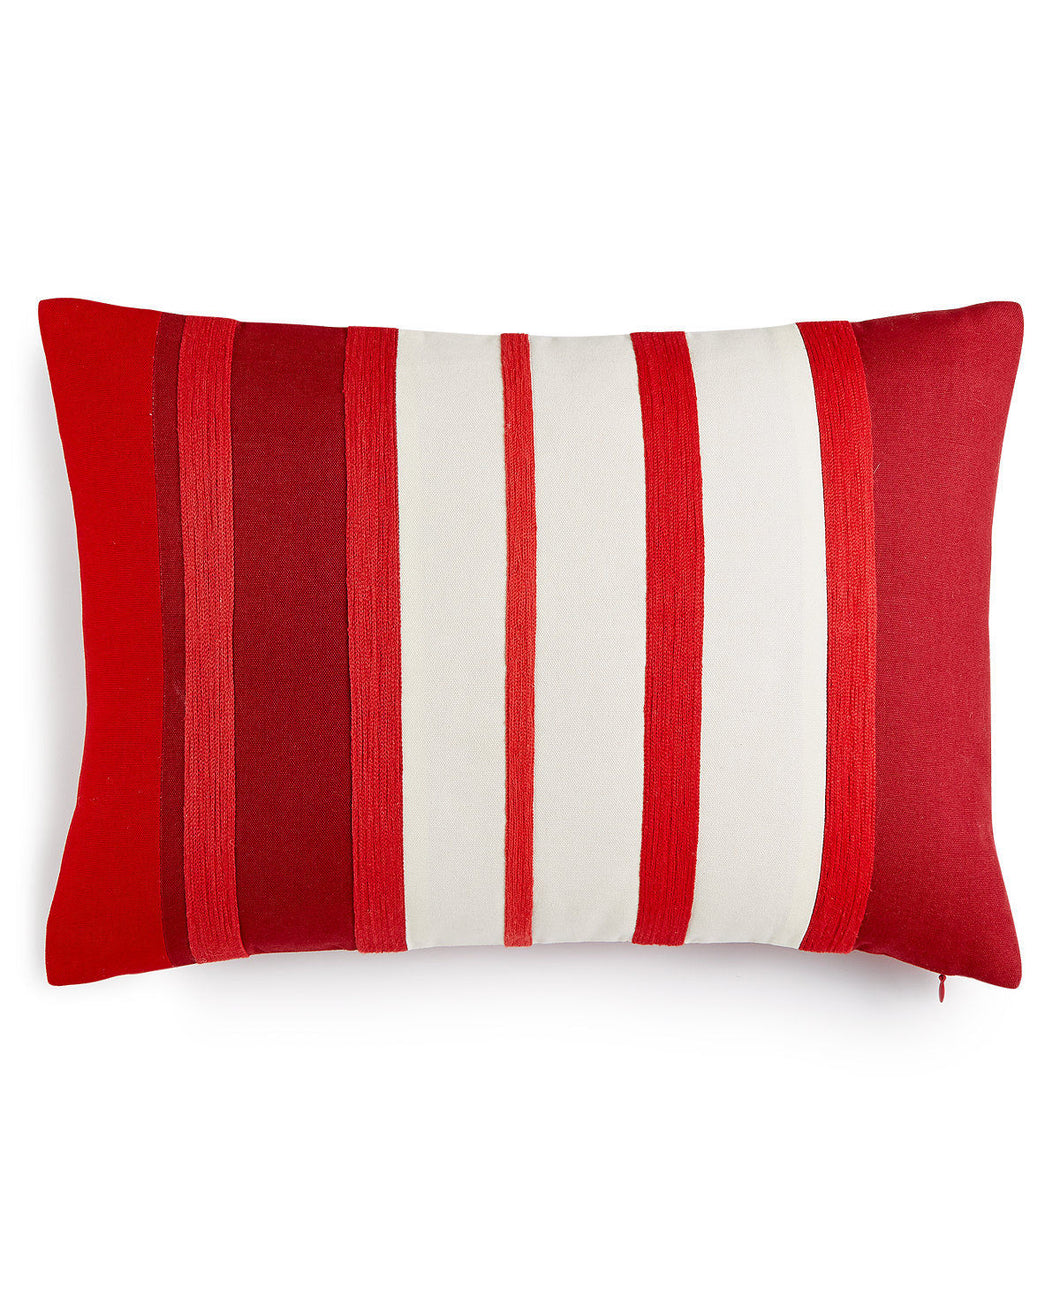 Martha Stewart Collection Rich Red Stripe Decorative Pillow 14x20